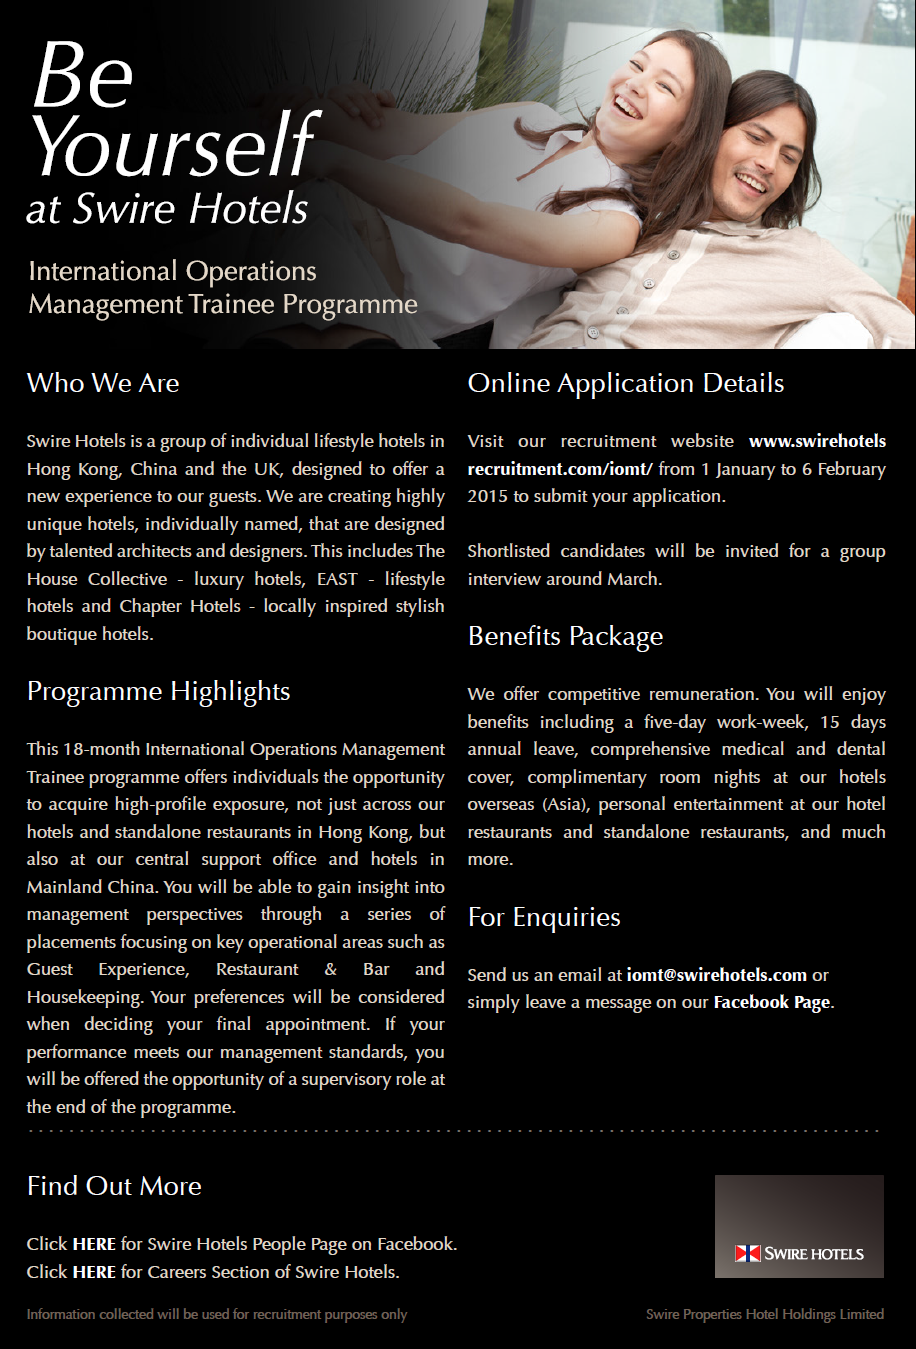 International Operations Management Trainee Programme